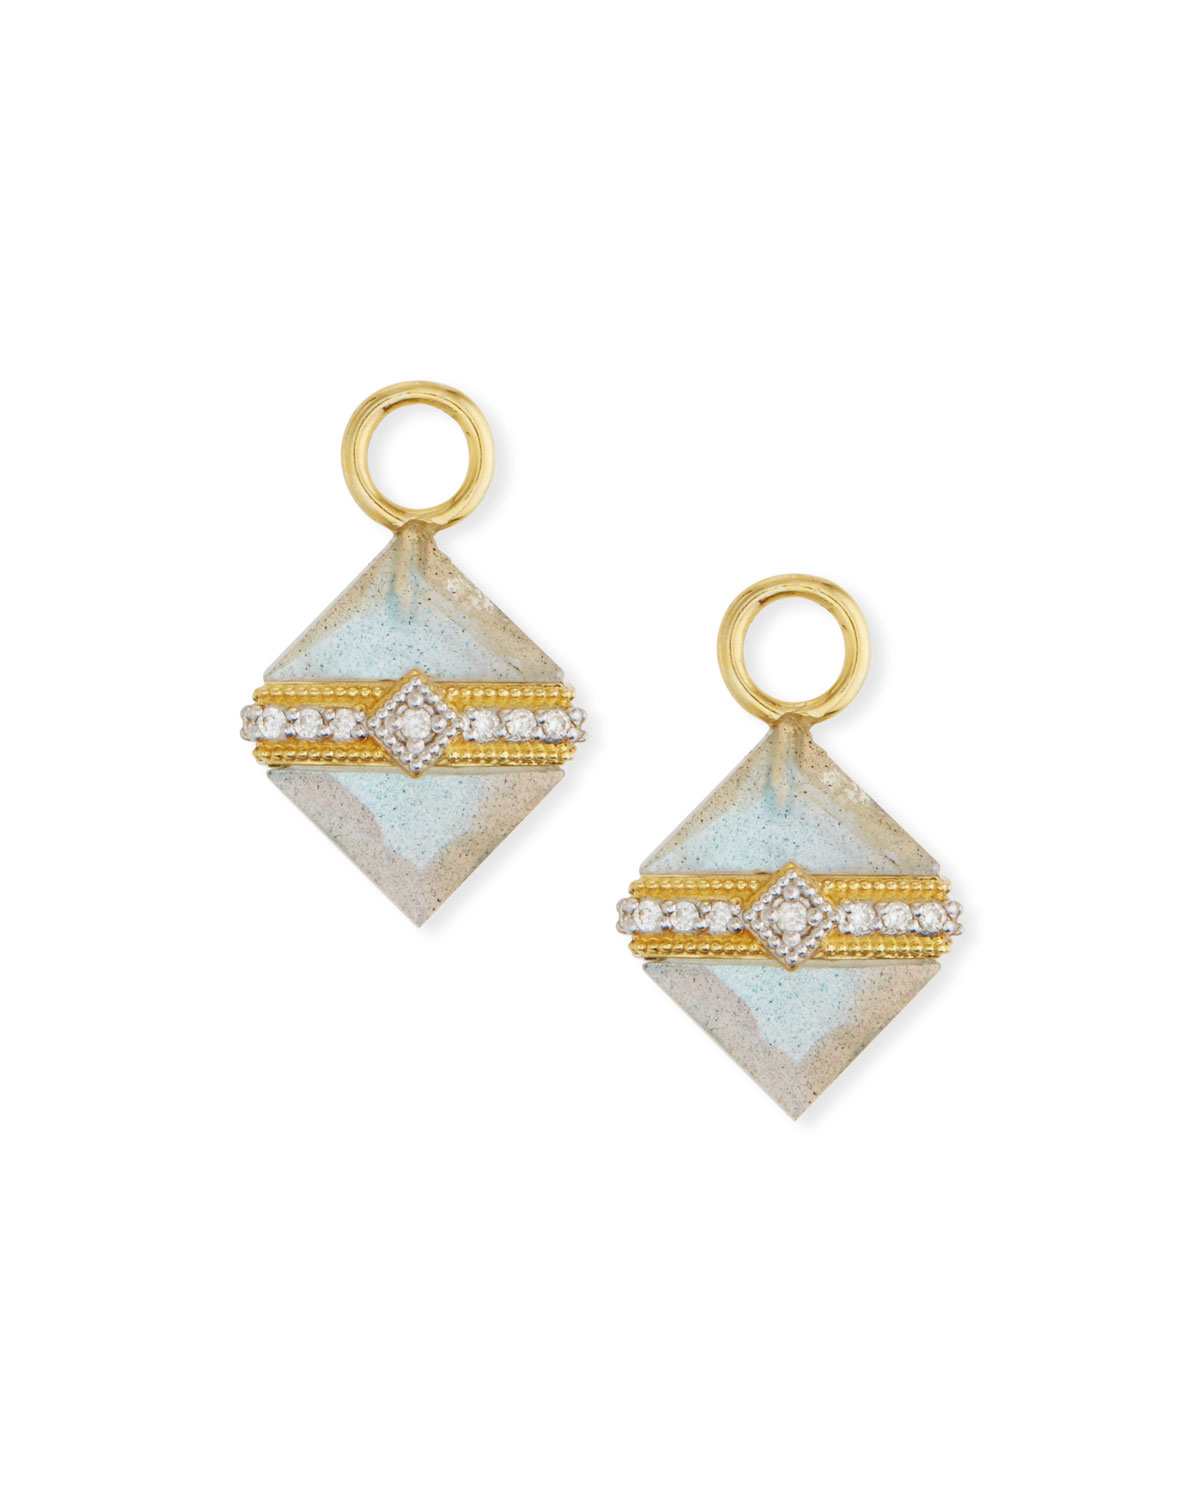 18k Gold Lisse Wred Labradorite Square Earring Charms